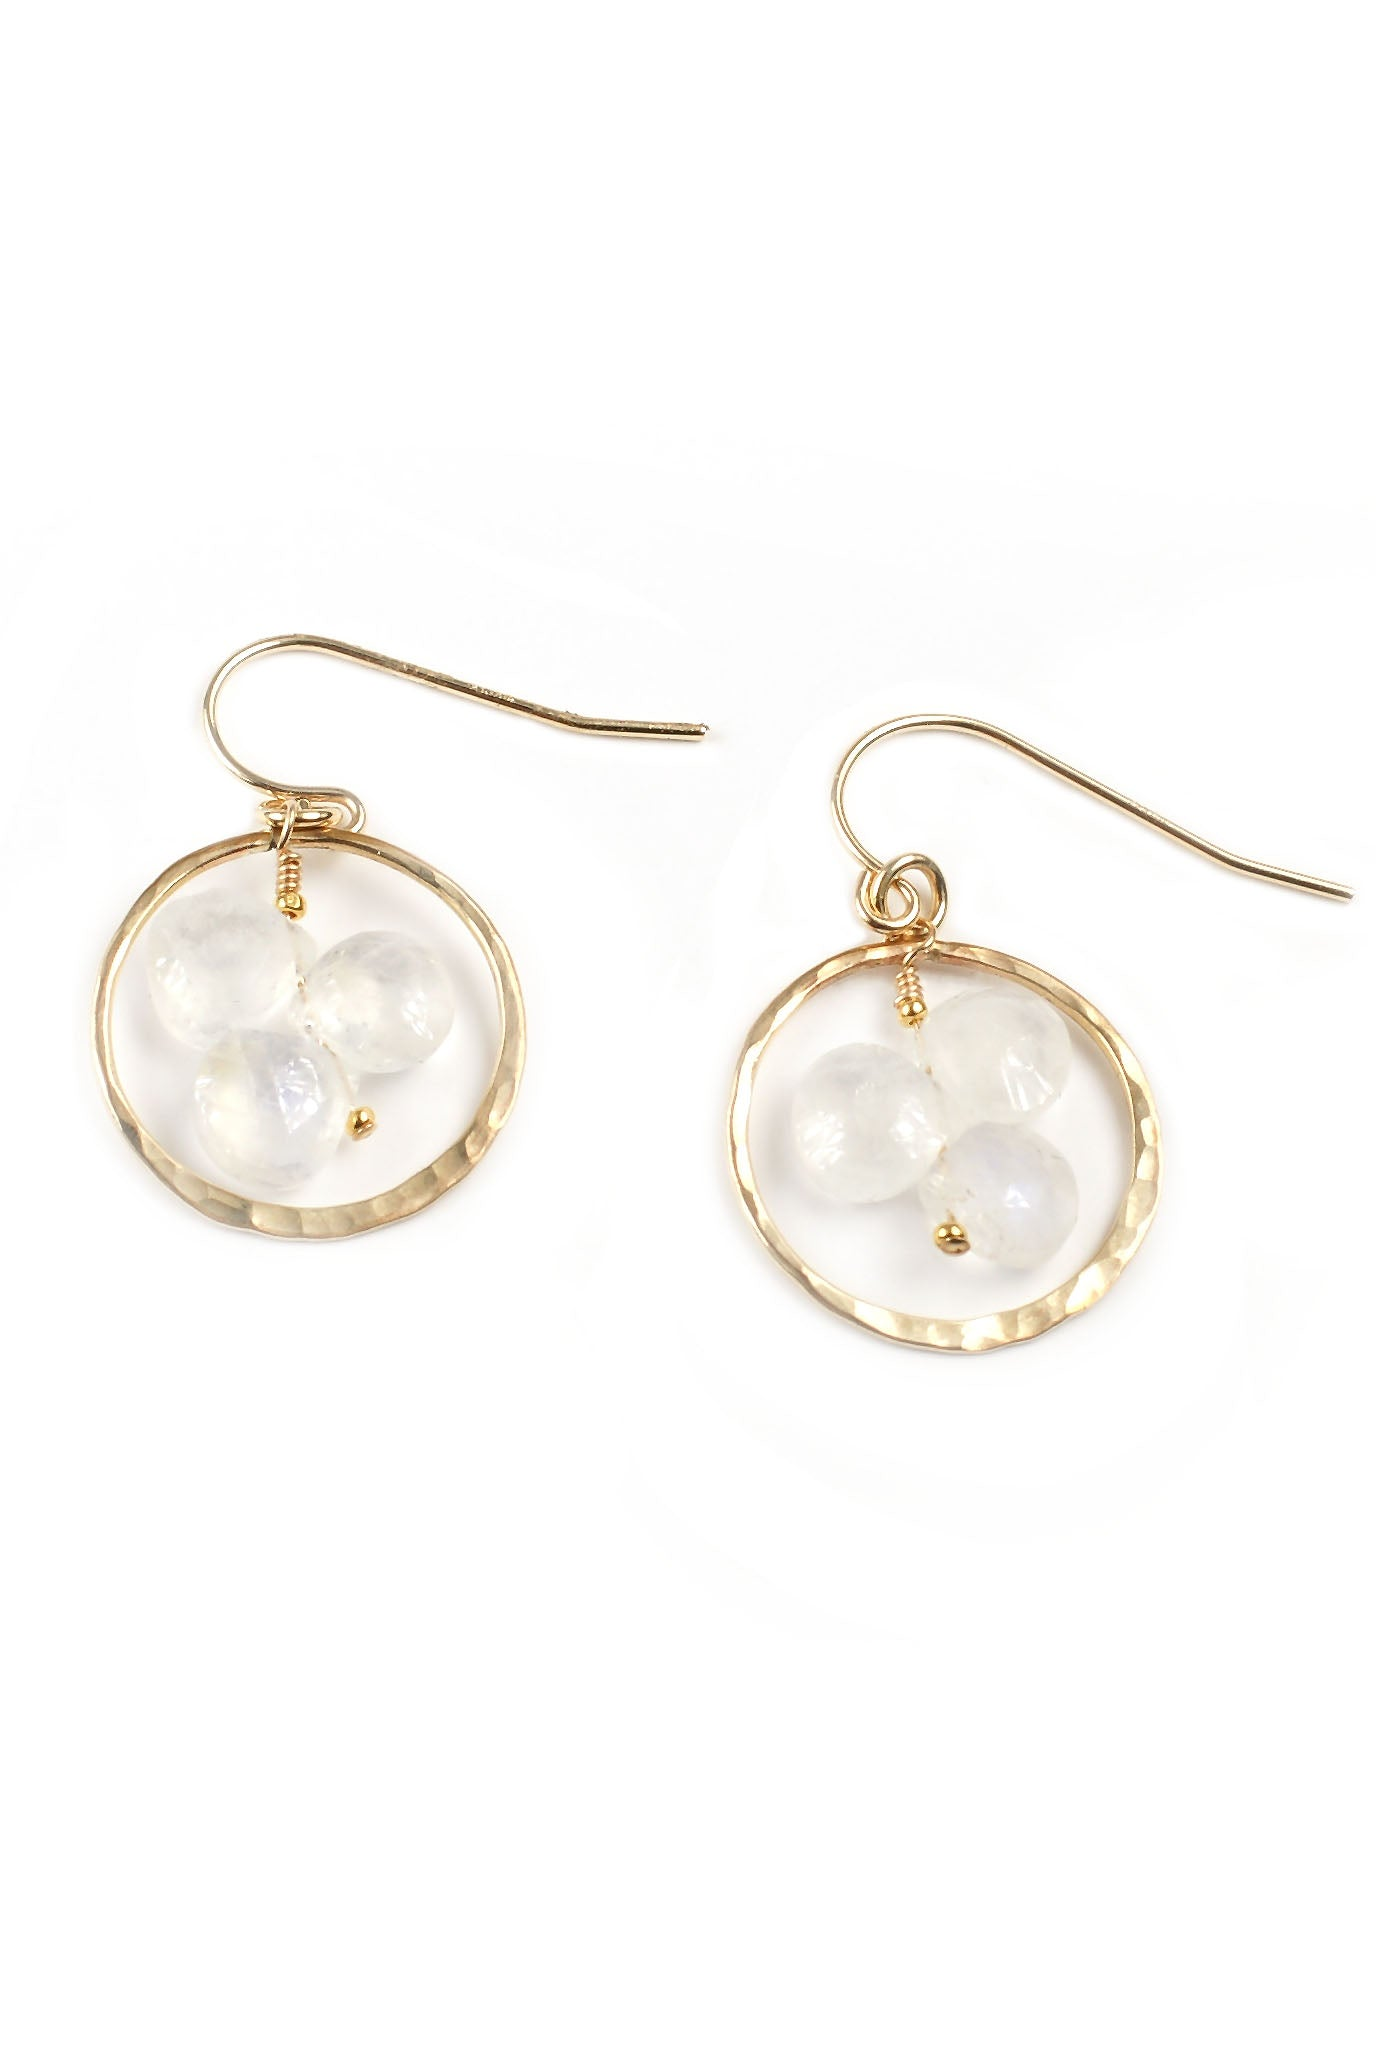 Moonstone Trio Earrings